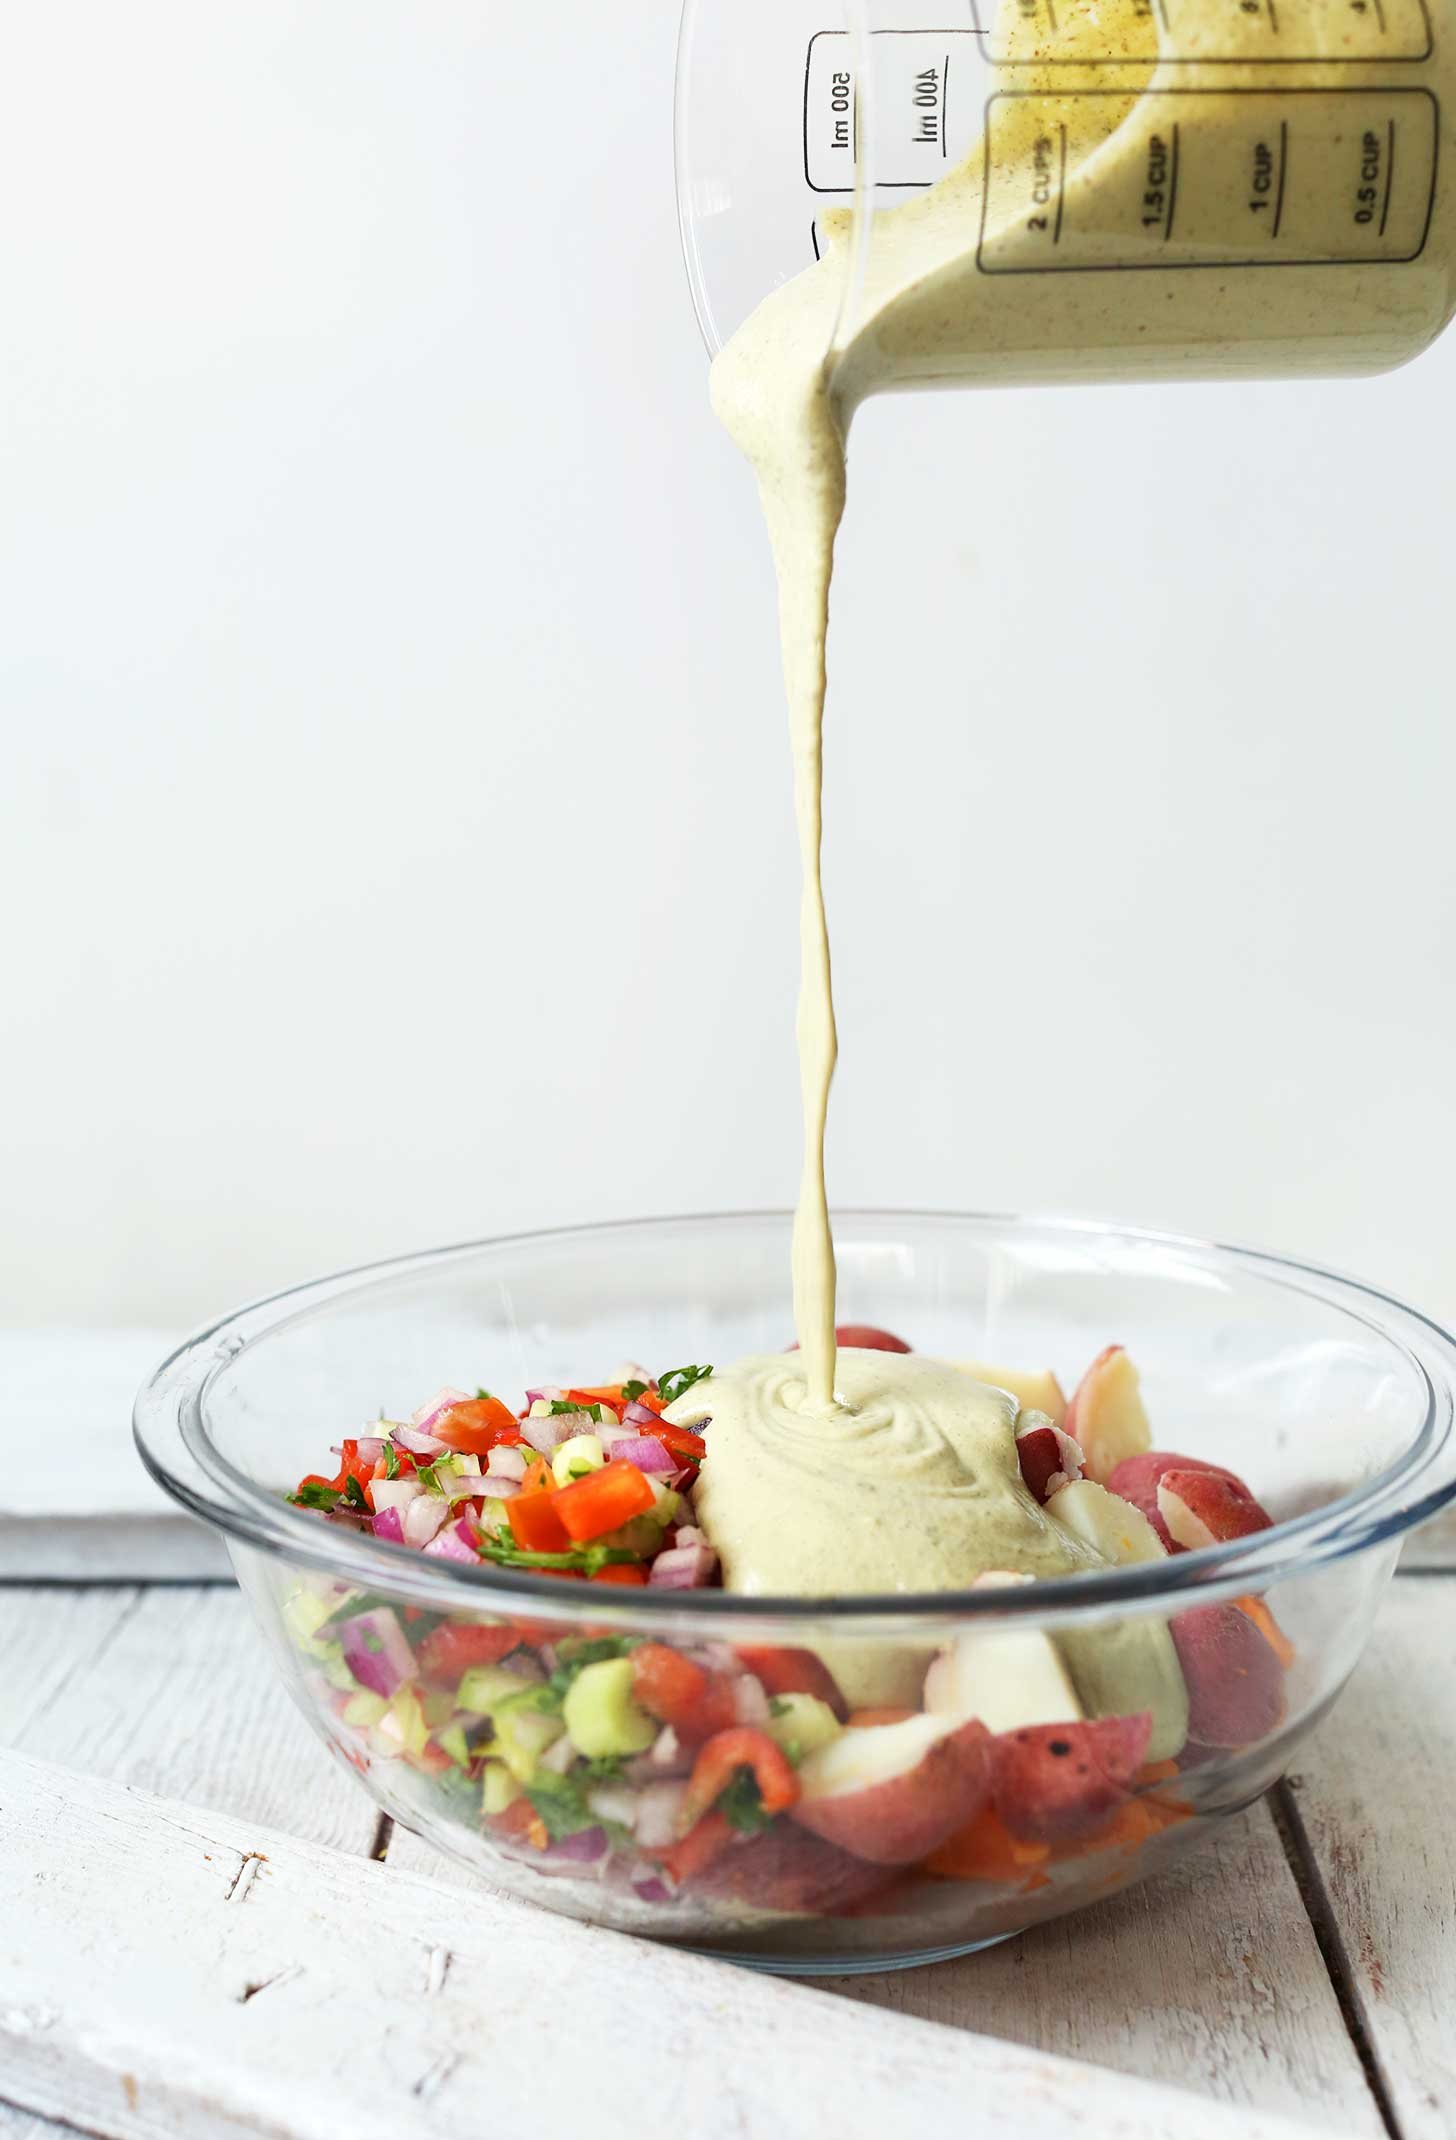 Pouring dressing onto a bowl of our Simple Vegan Potato Salad recipe